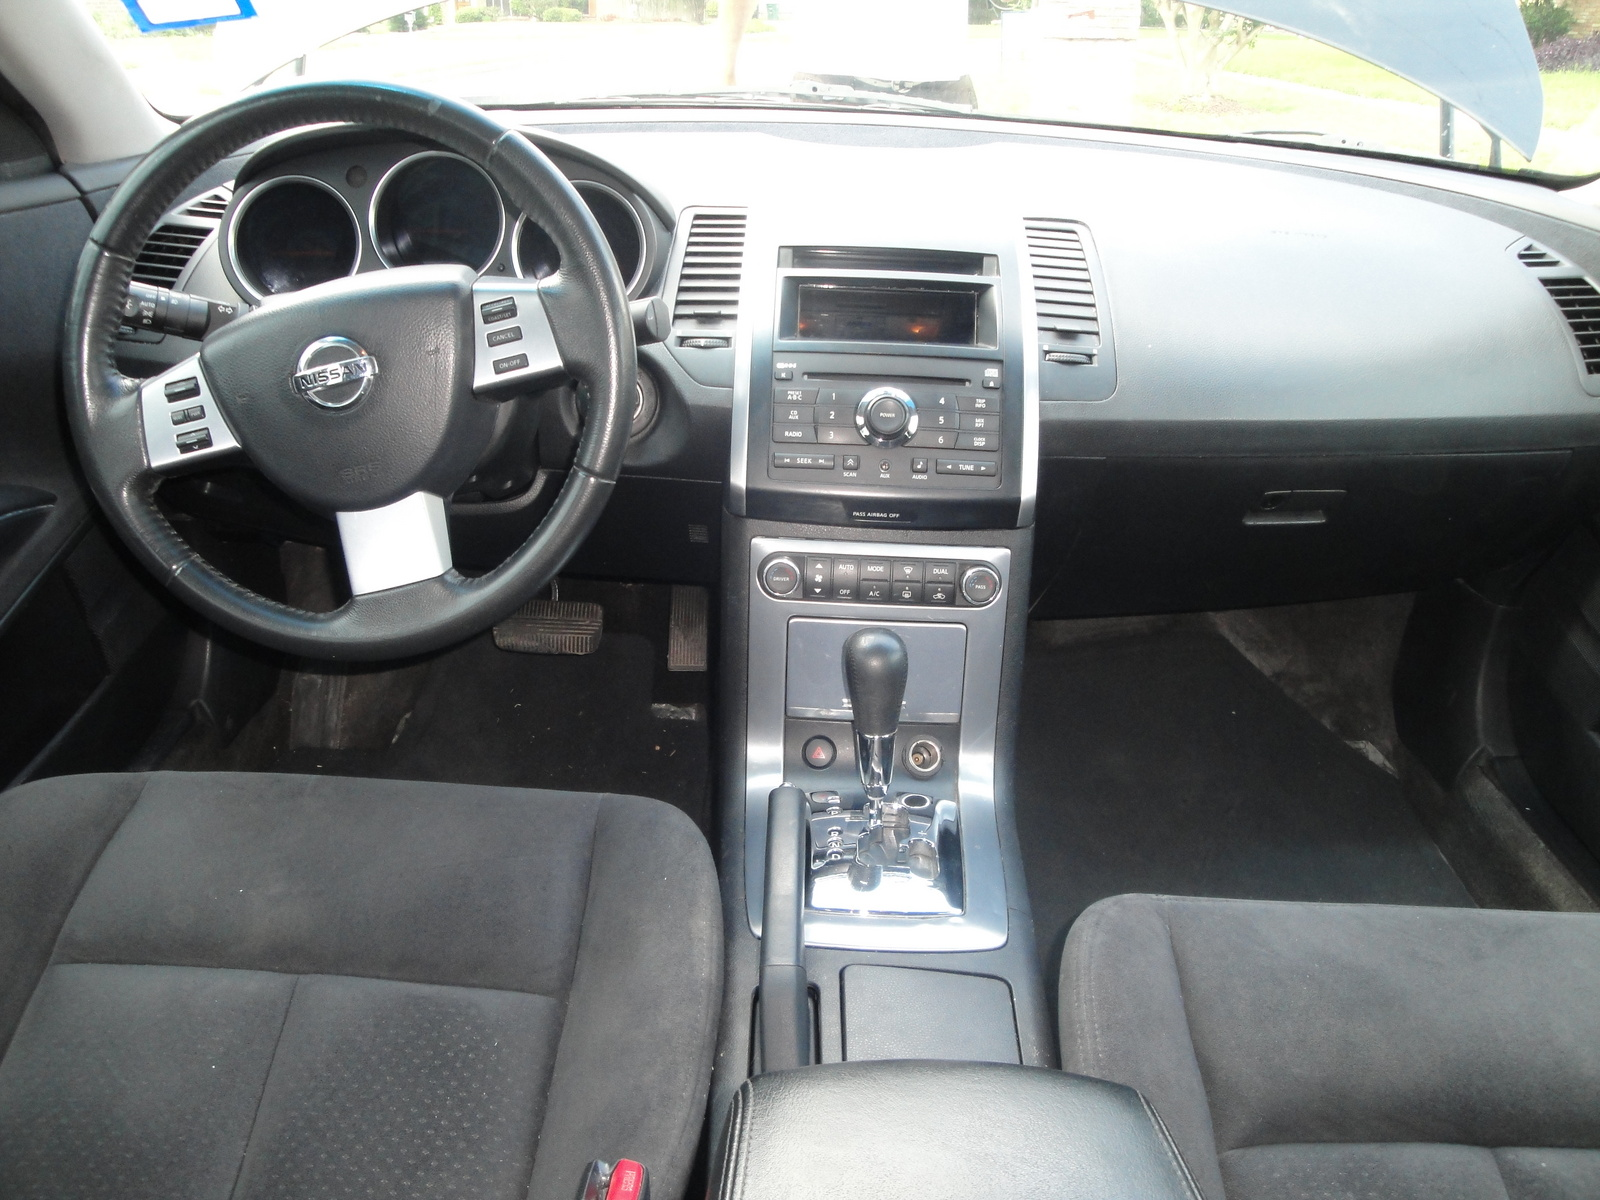 2008 nissan maxima interior viewing gallery